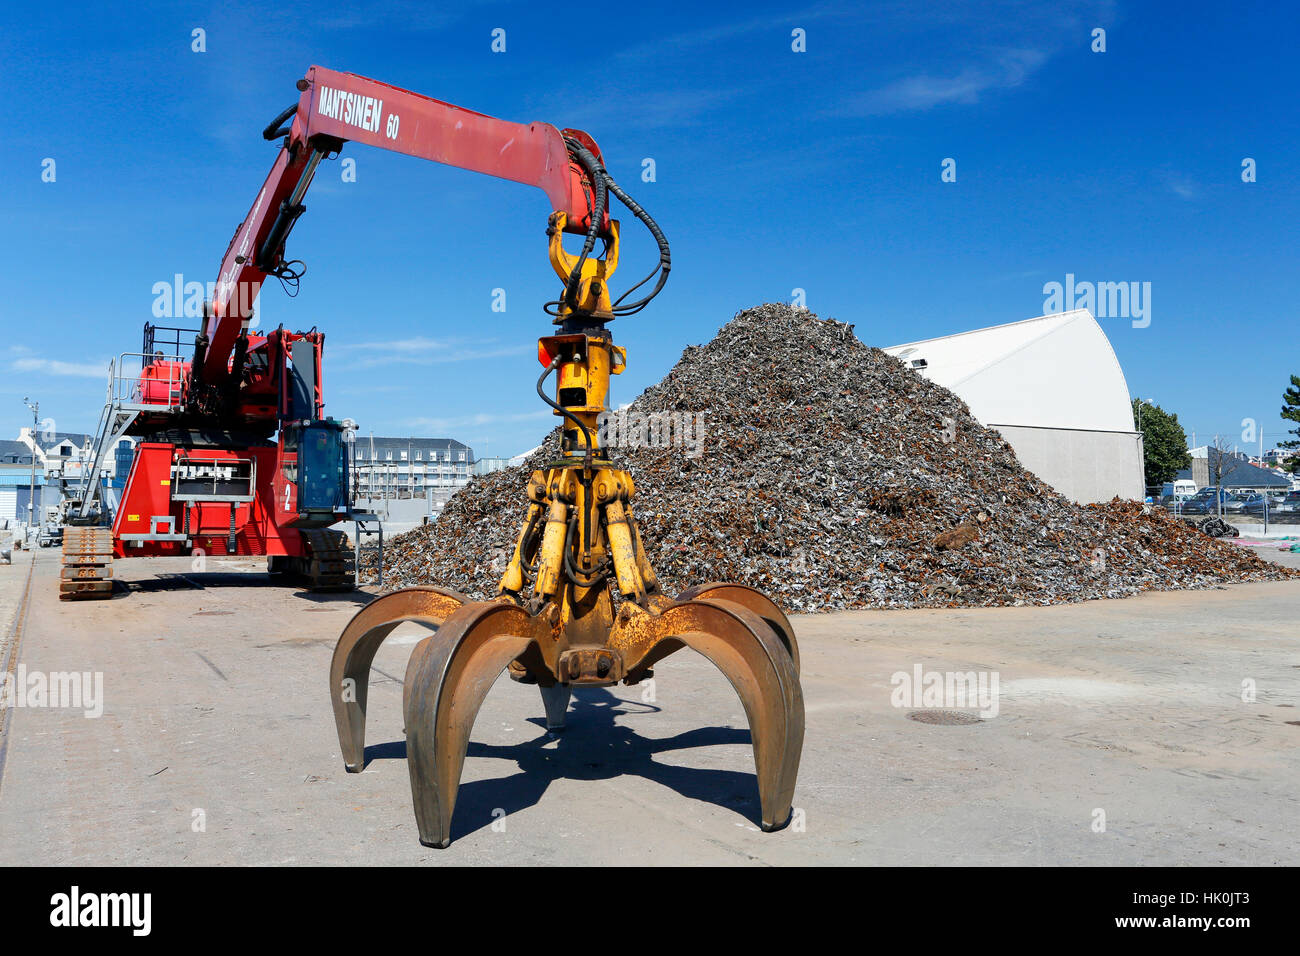 France, Normandy, Granville. The port. Scrap iron from household waste waiting to go to Russia or China for recycling. - Stock Image